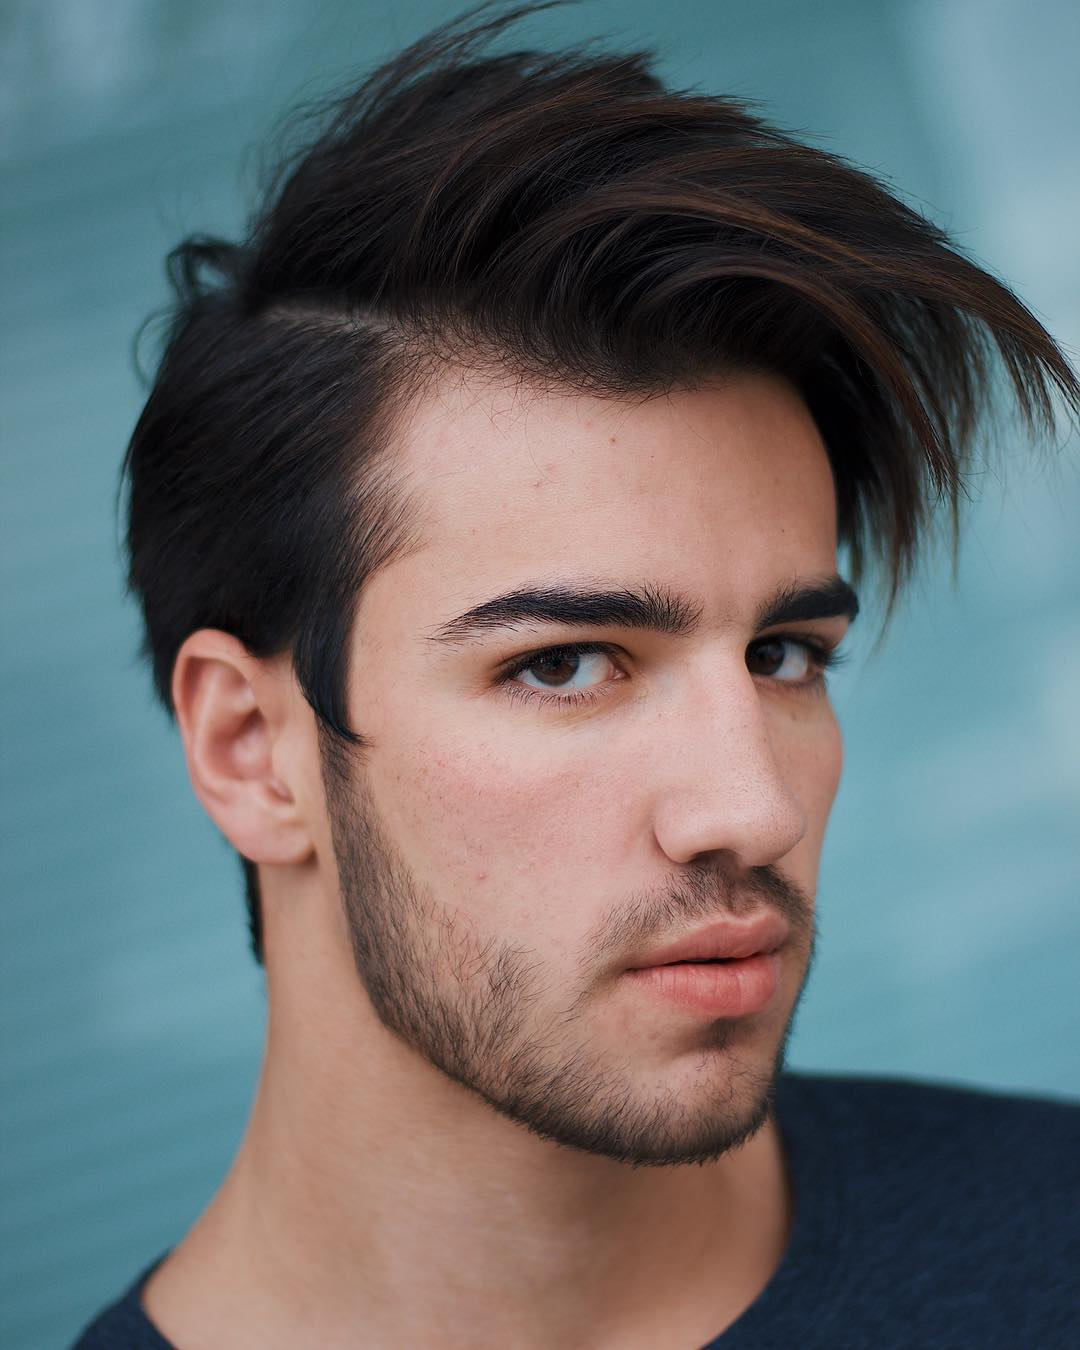 travisanthonyhair best hairstyle for men the gentleman haircut